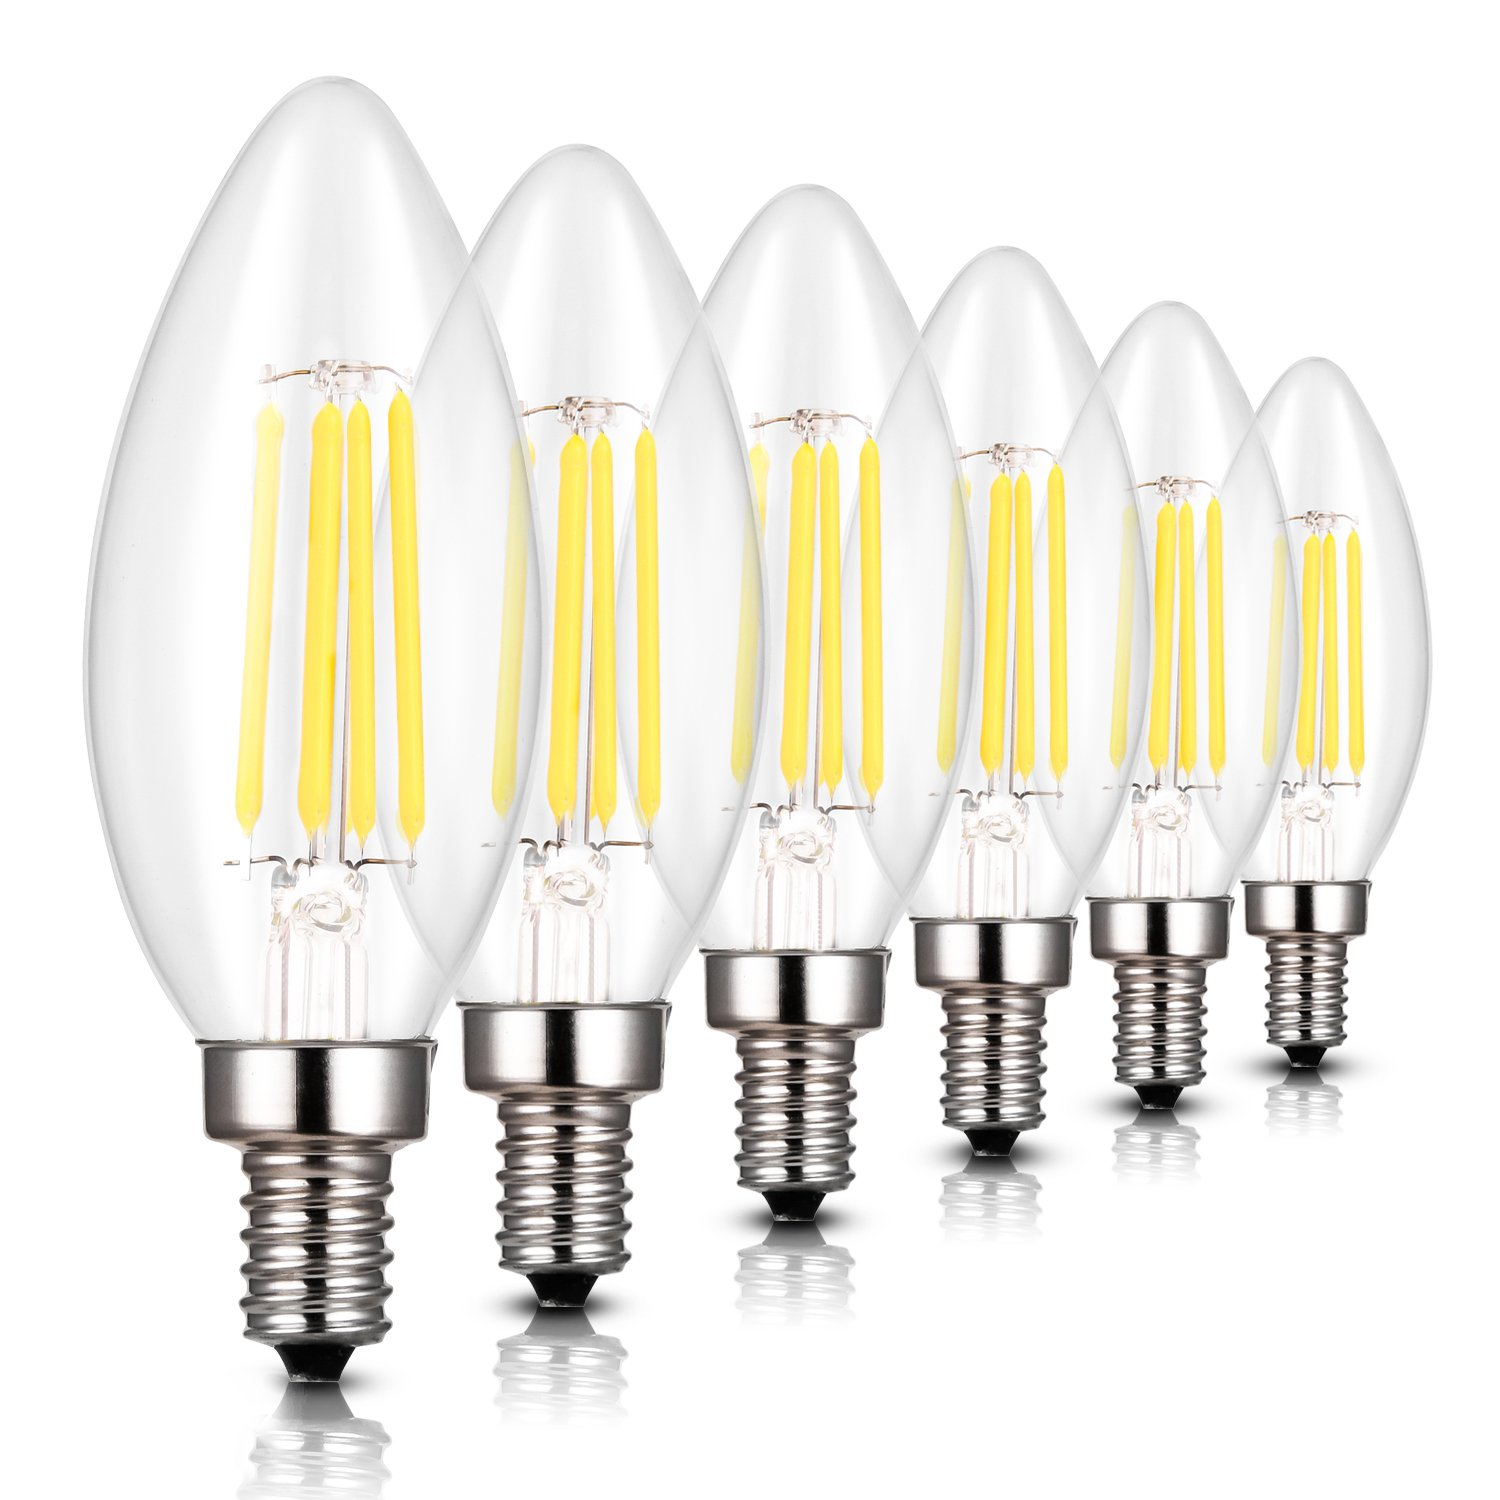 LED Candelabra Bulb,4w B11 Dimmable Chandelier LED Bulbs,40W Incandescent Equivalent, Torpedo Shape Bullet Top with 360° Beam Angle, Soft Warm White 2700K, 360 Lumens,E12 Candle Light Bulb , Pack of 6